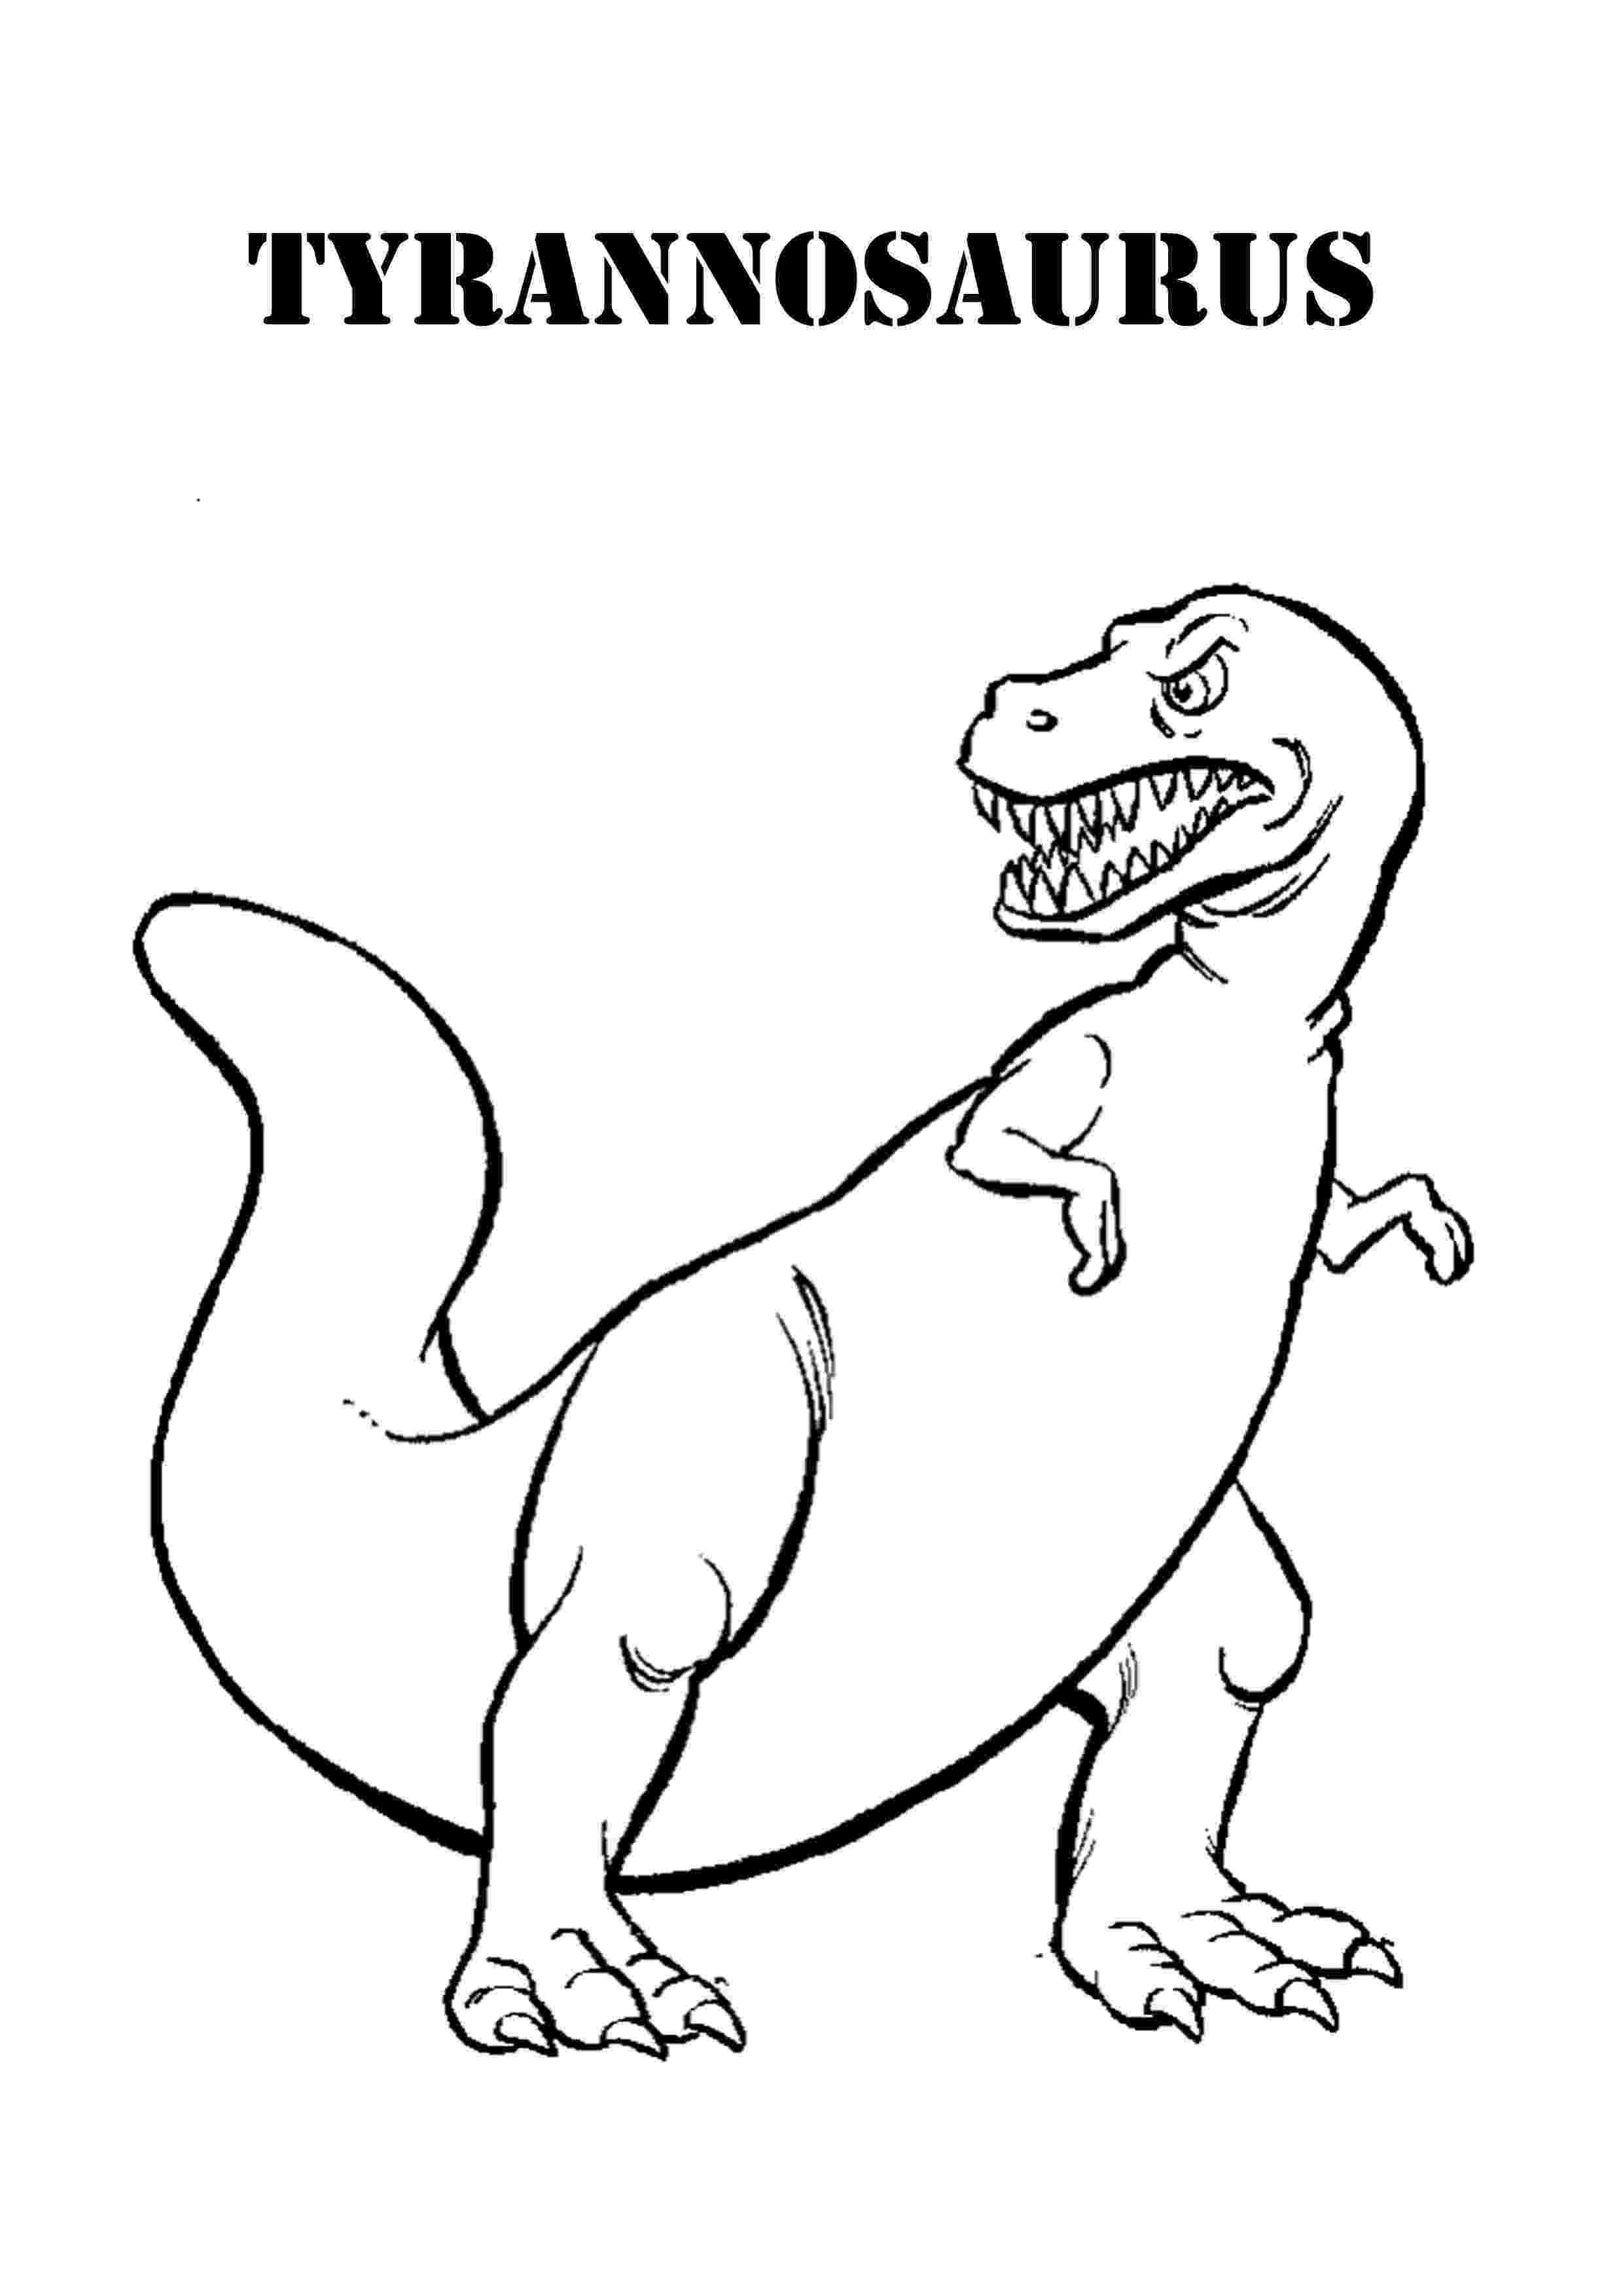 scary dinosaur coloring pages scary dinosaur coloring pages bestappsforkidscom dinosaur pages coloring scary